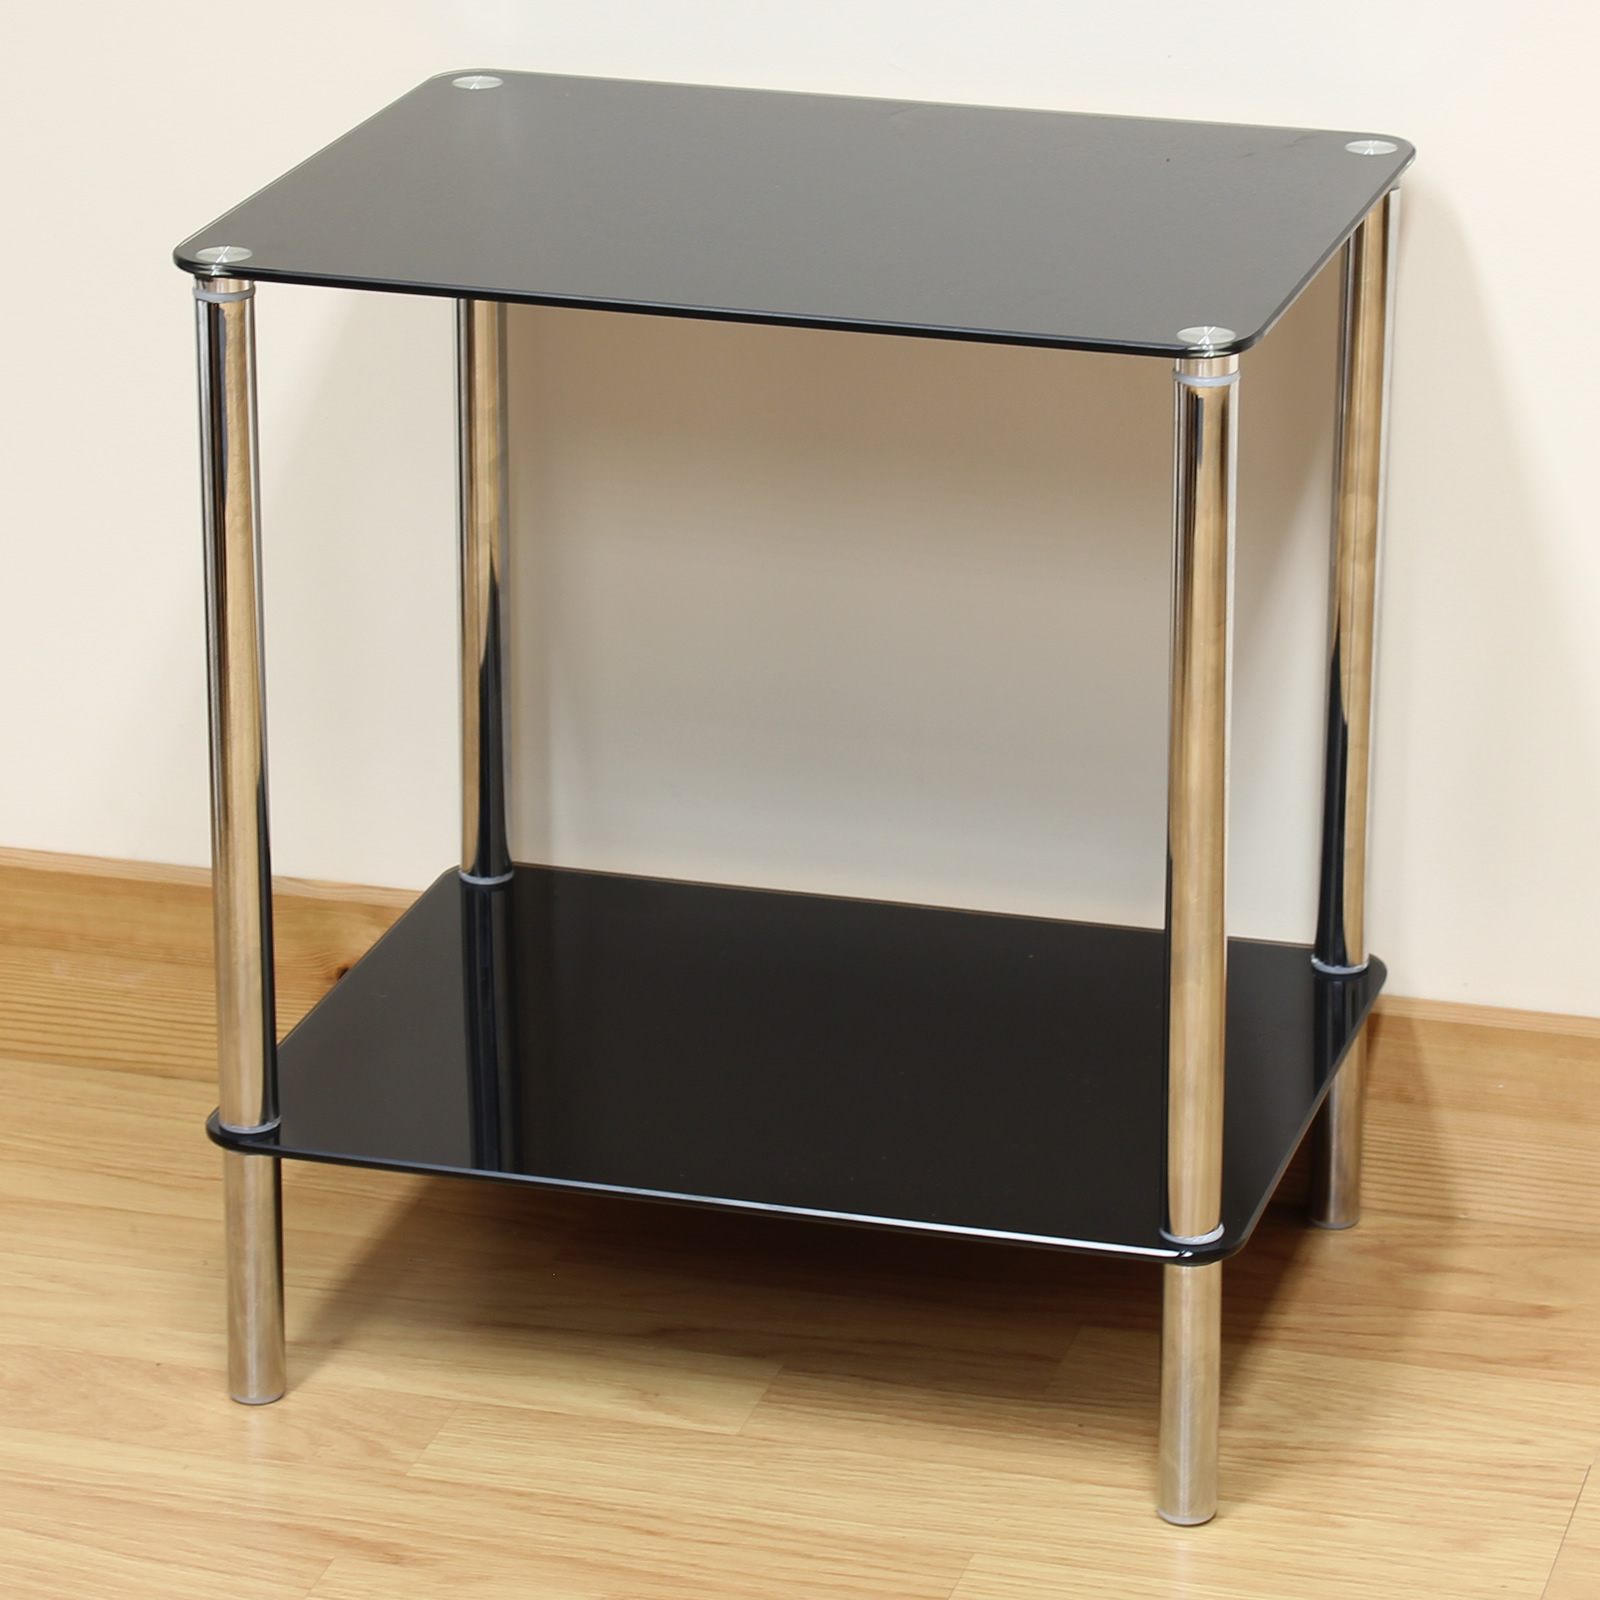 Hartleys black glass 2 tier side lamp coffee lounge living room table shelf Black glass side tables for living room